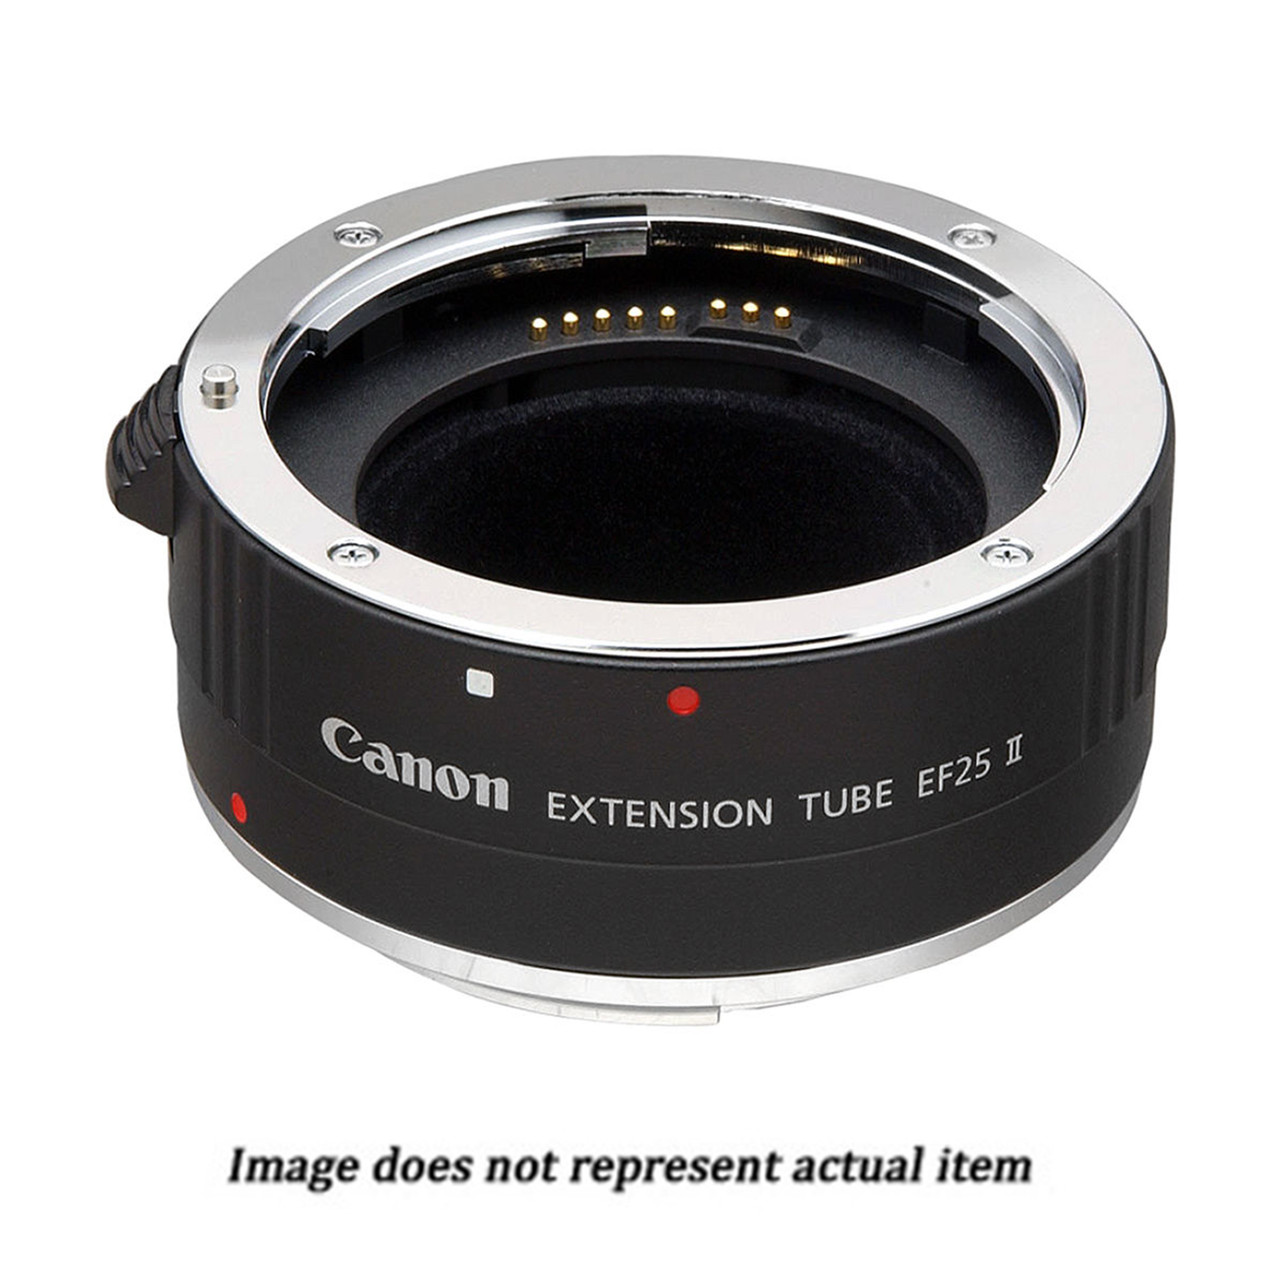 Canon Extension Tube EF 25 II  (USED)